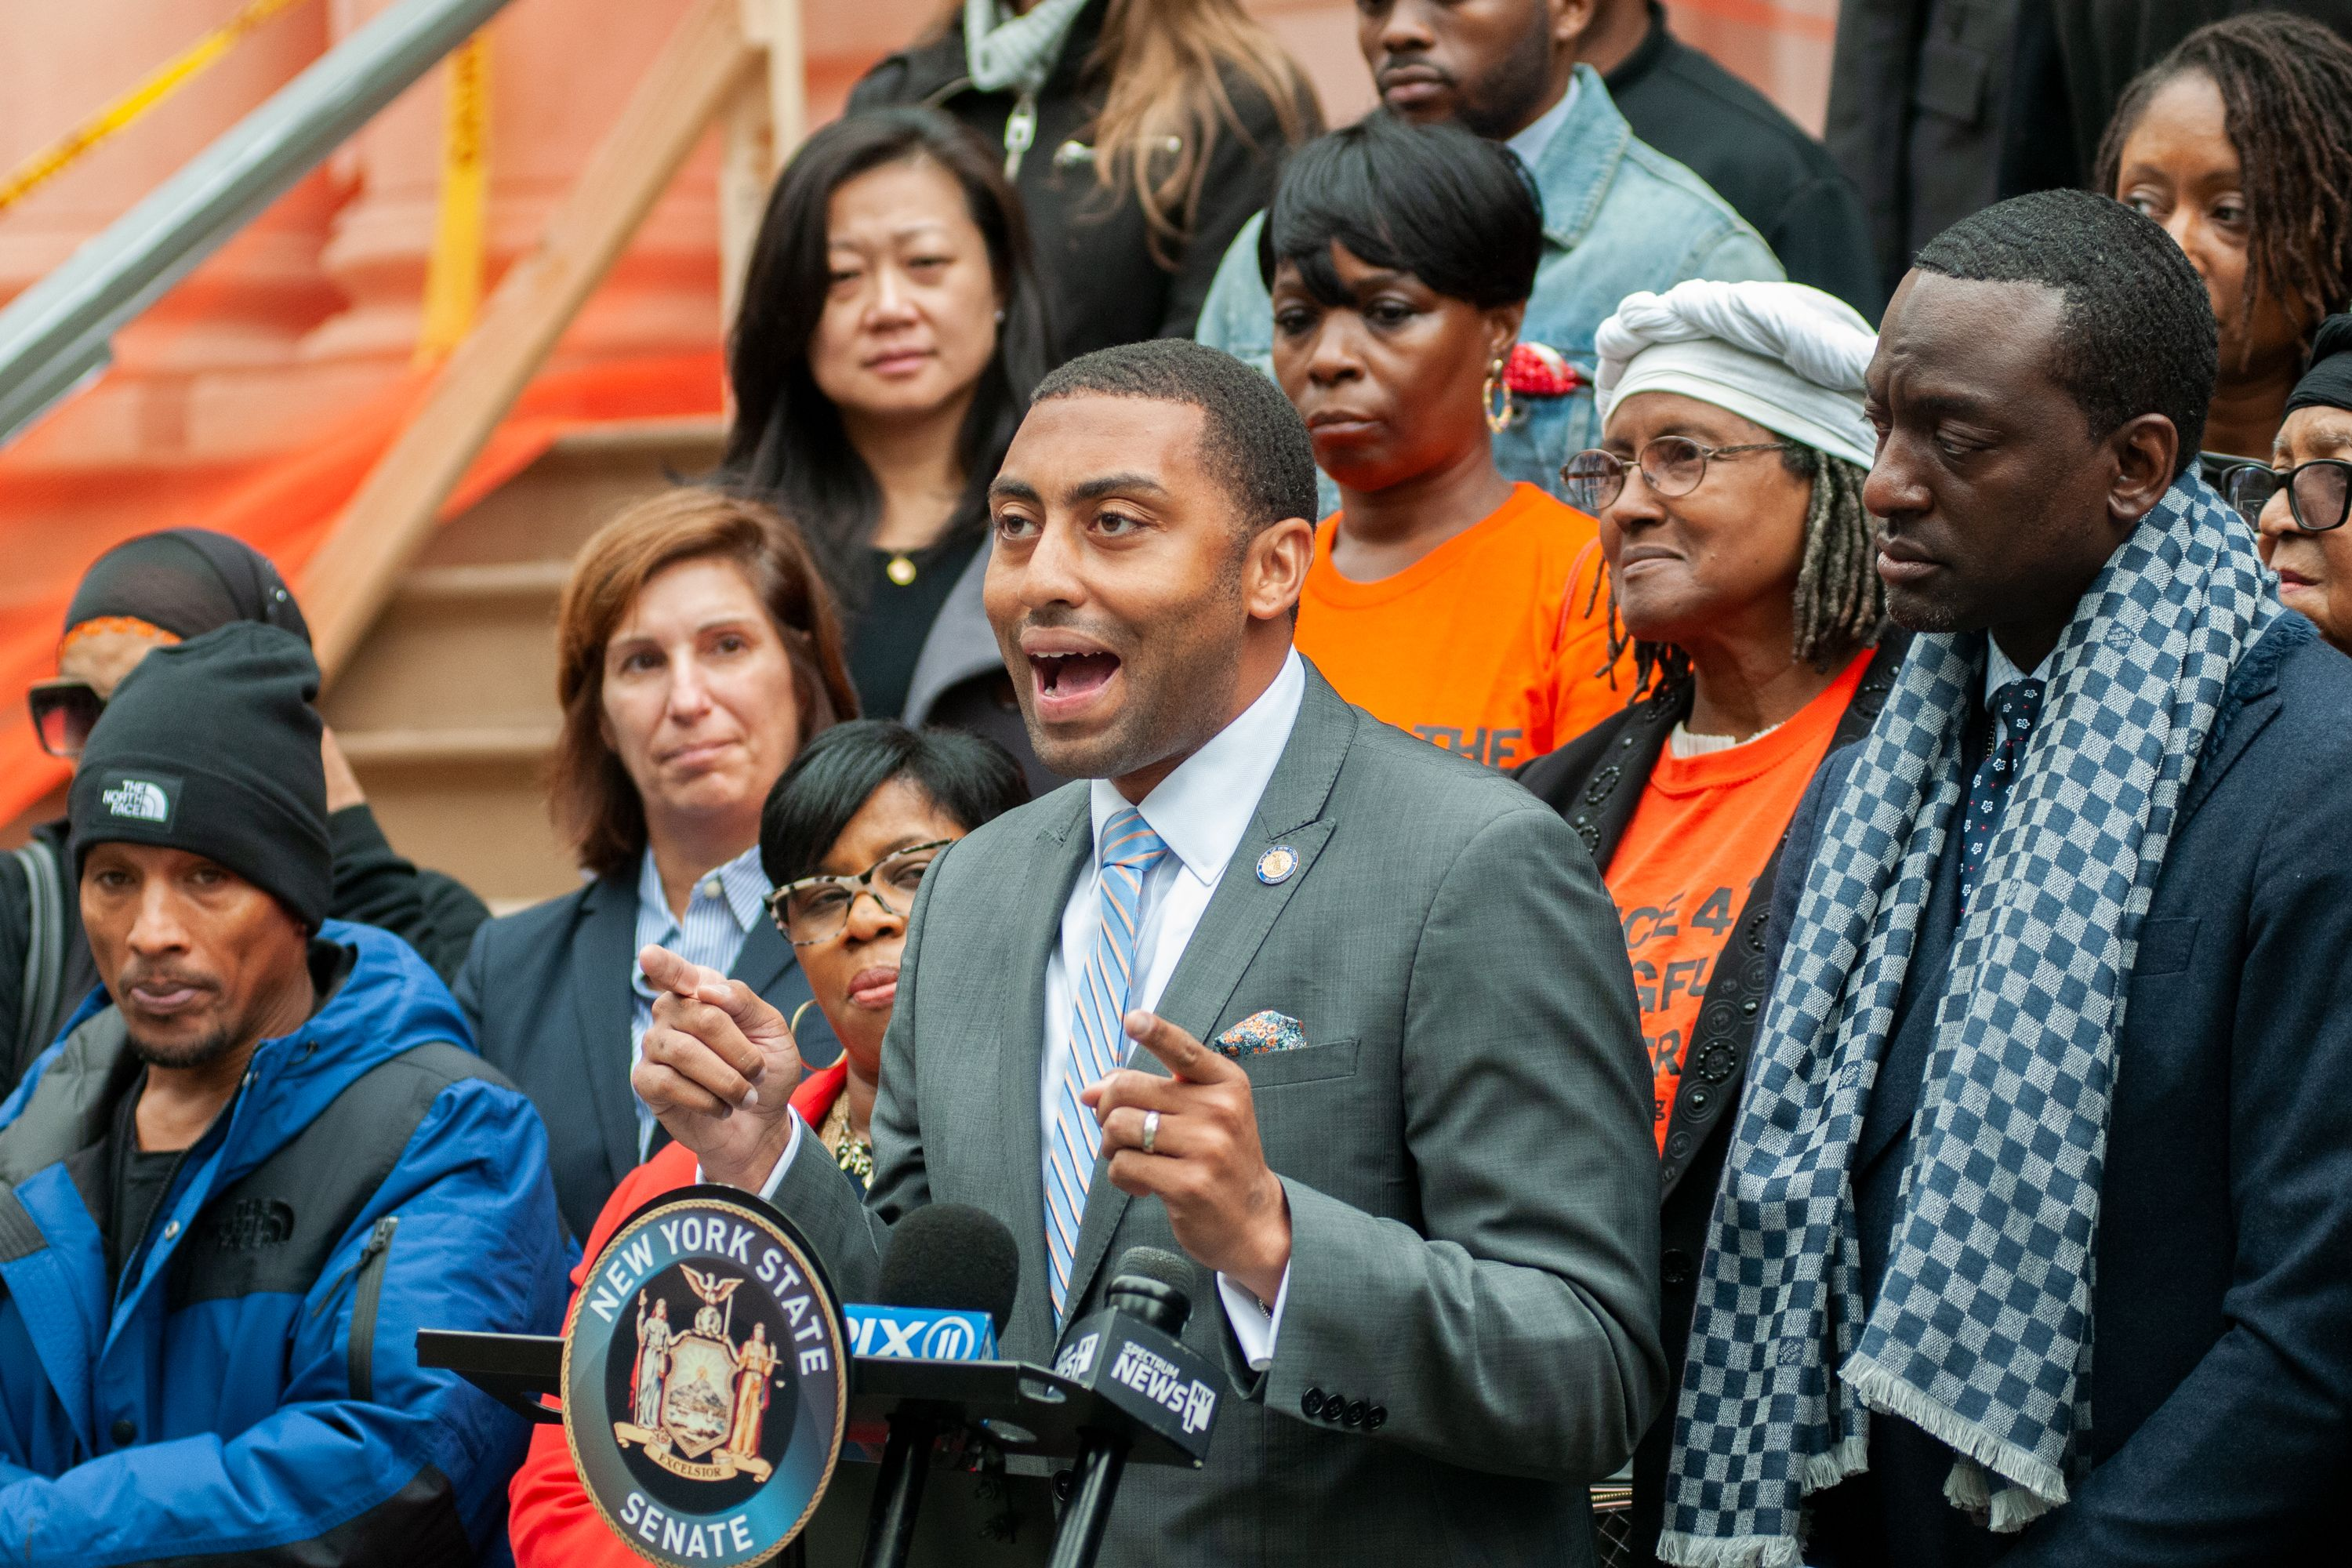 State Senator Jamaal Bailey (D-Bronx) speaks in support of a group of criminal justice reform bills during a rally at City Hall, Oct. 30, 2019.